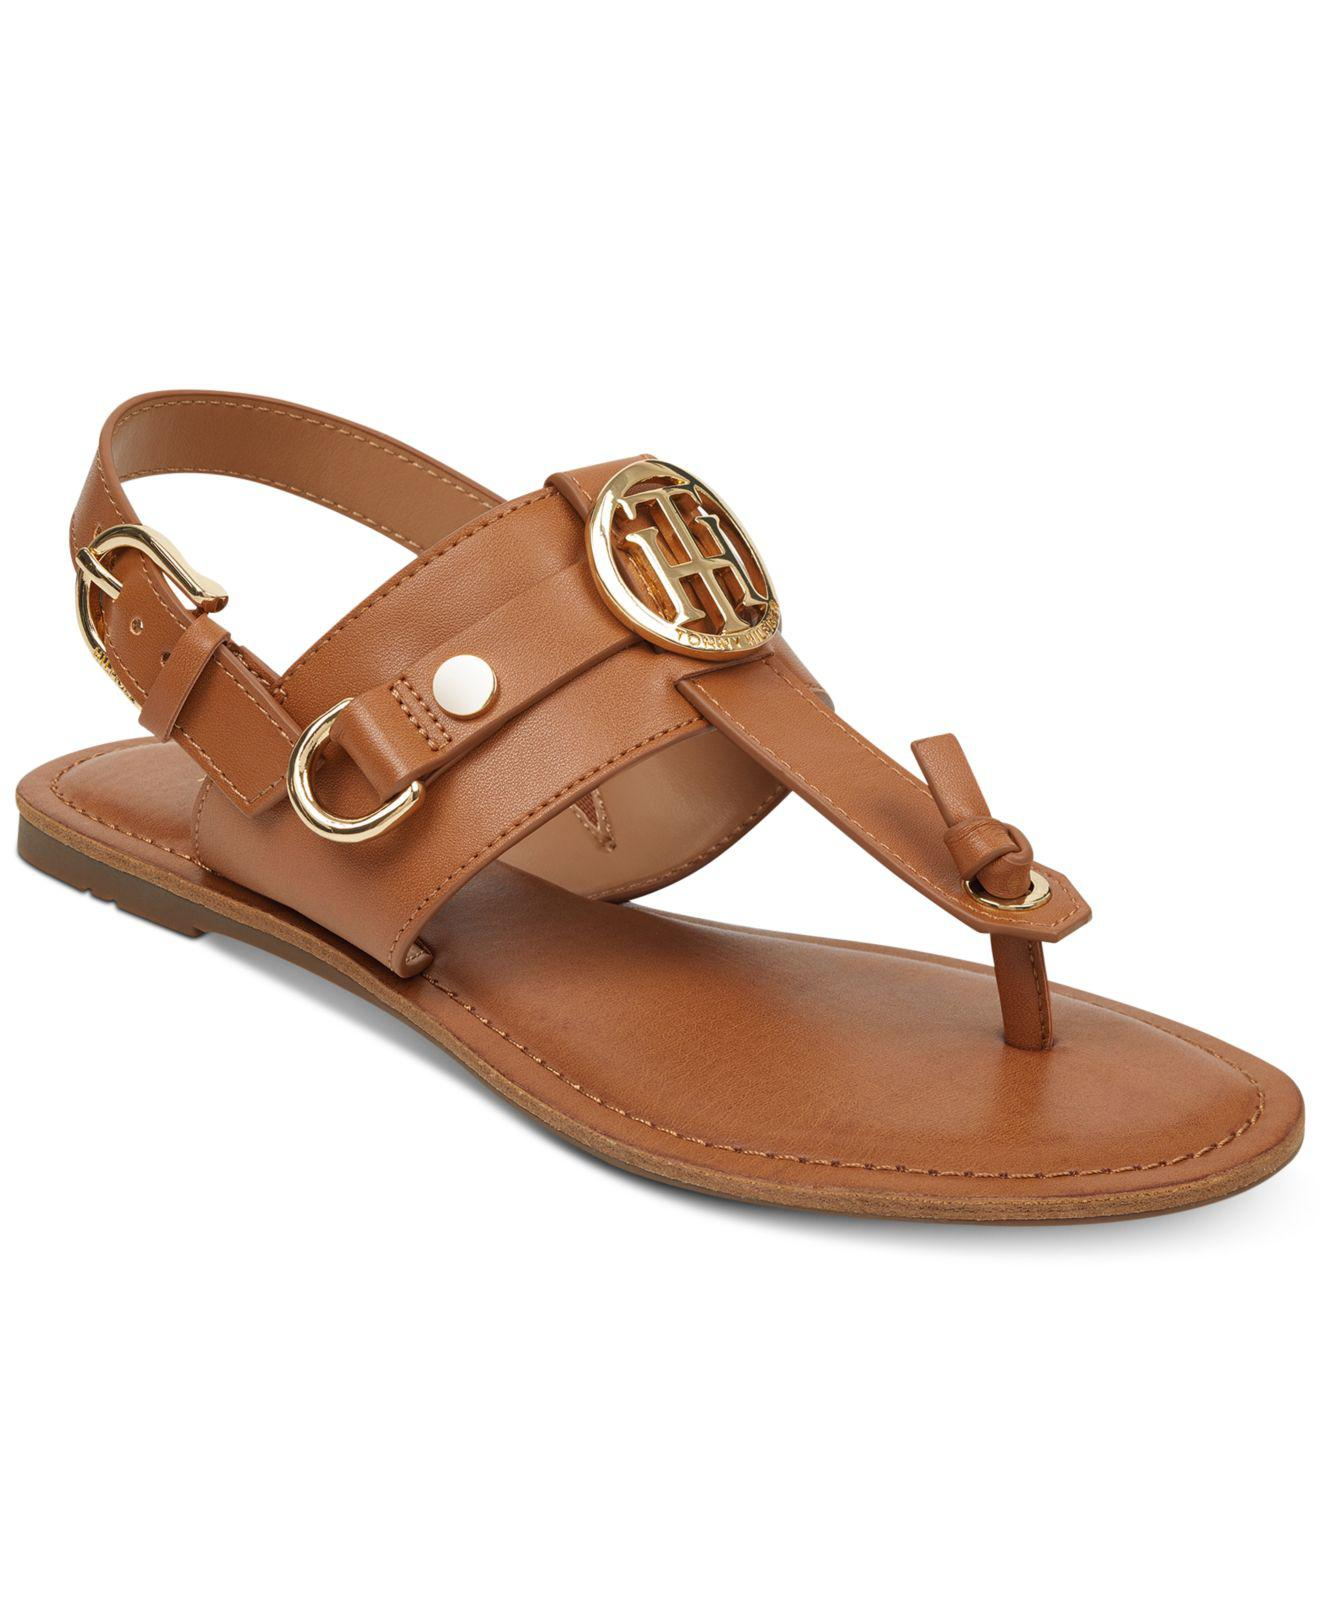 Tommy Hilfiger Women's Leather Strappy Flat Sling Back Sandals Buy Online Outlet 100% Original 2018 Unisex For Sale Buy Cheap For Nice Sale Explore hFEBur1Bw